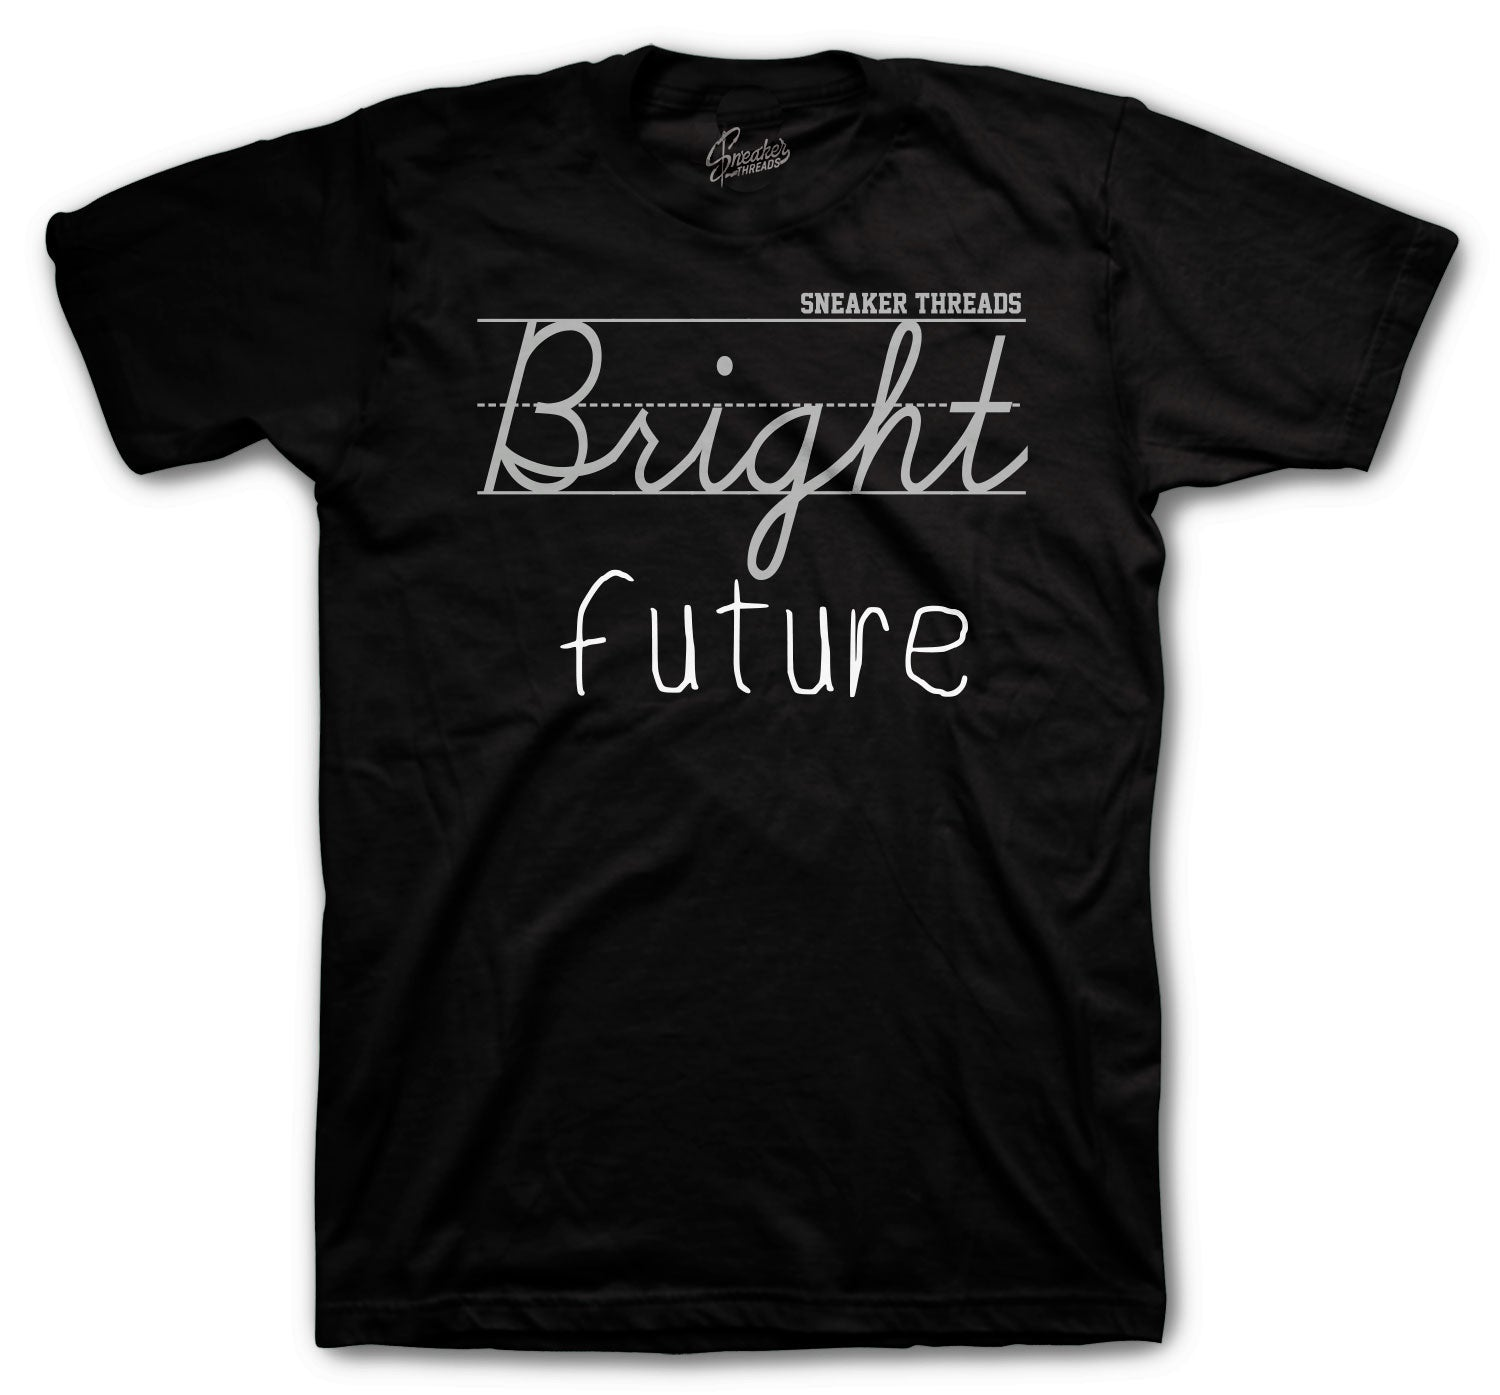 Jordan 11 Jubilee Bright Future Shirt